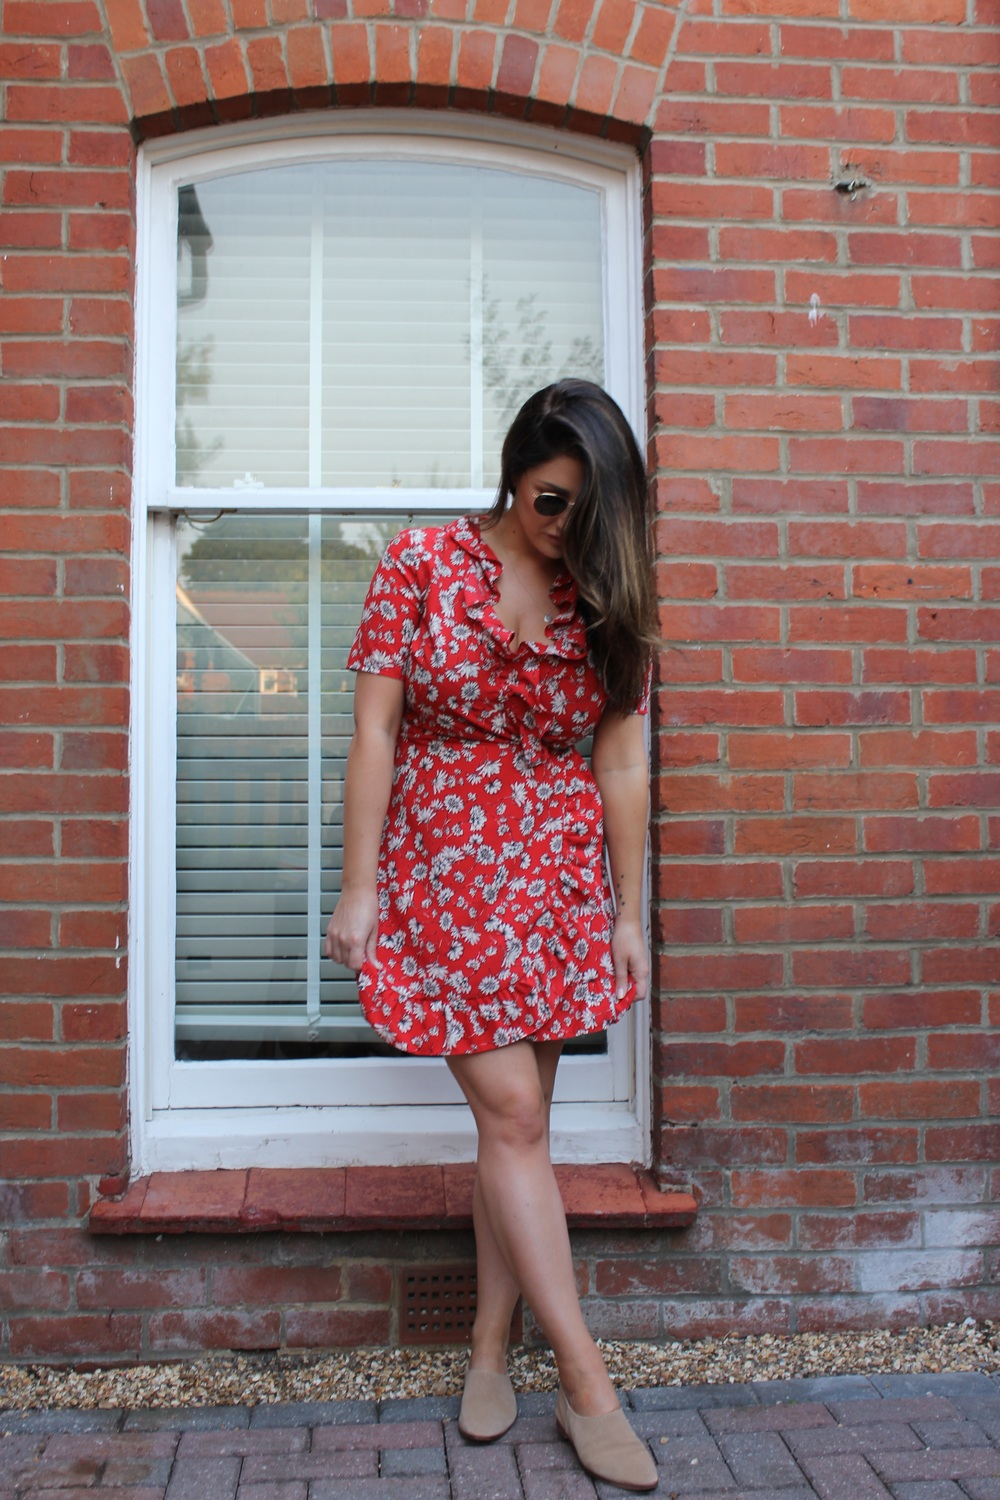 Dress - Topshop £42.00  Shoes - Zara  £29.99  Sunglasses - Rayban £135.00